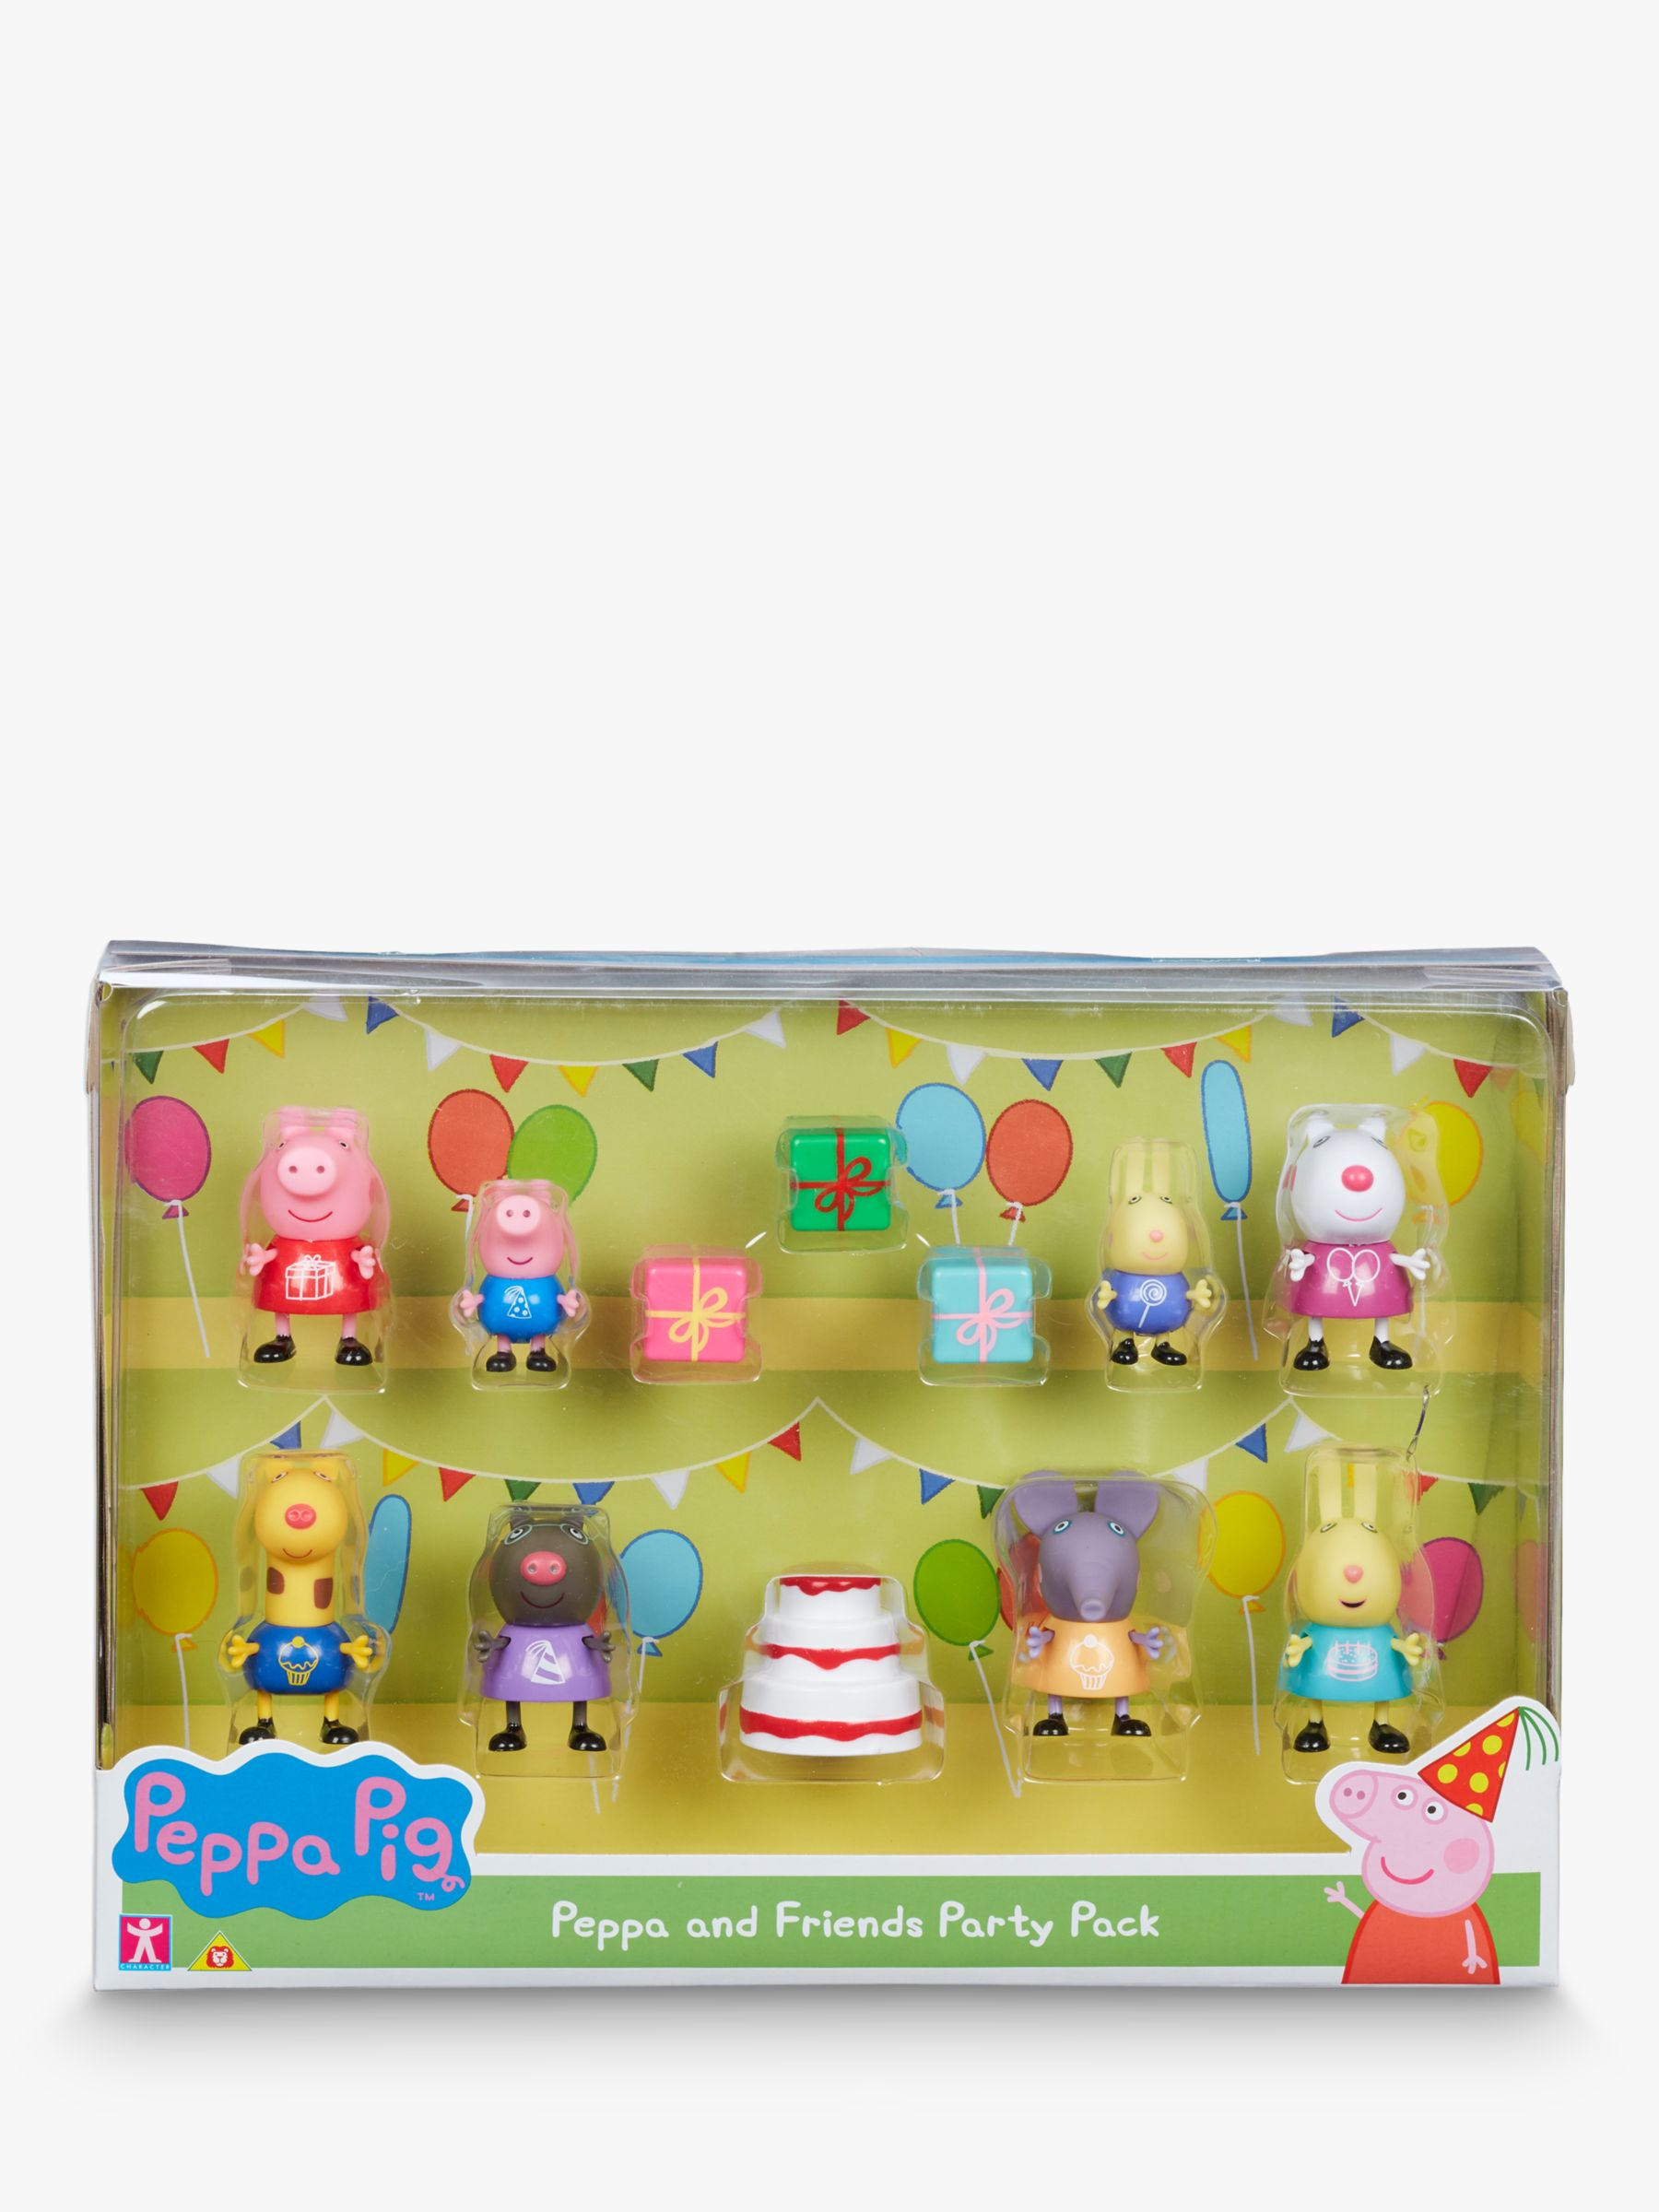 Peppa Pig Peppa Pig Peppa and Friends Party Pack